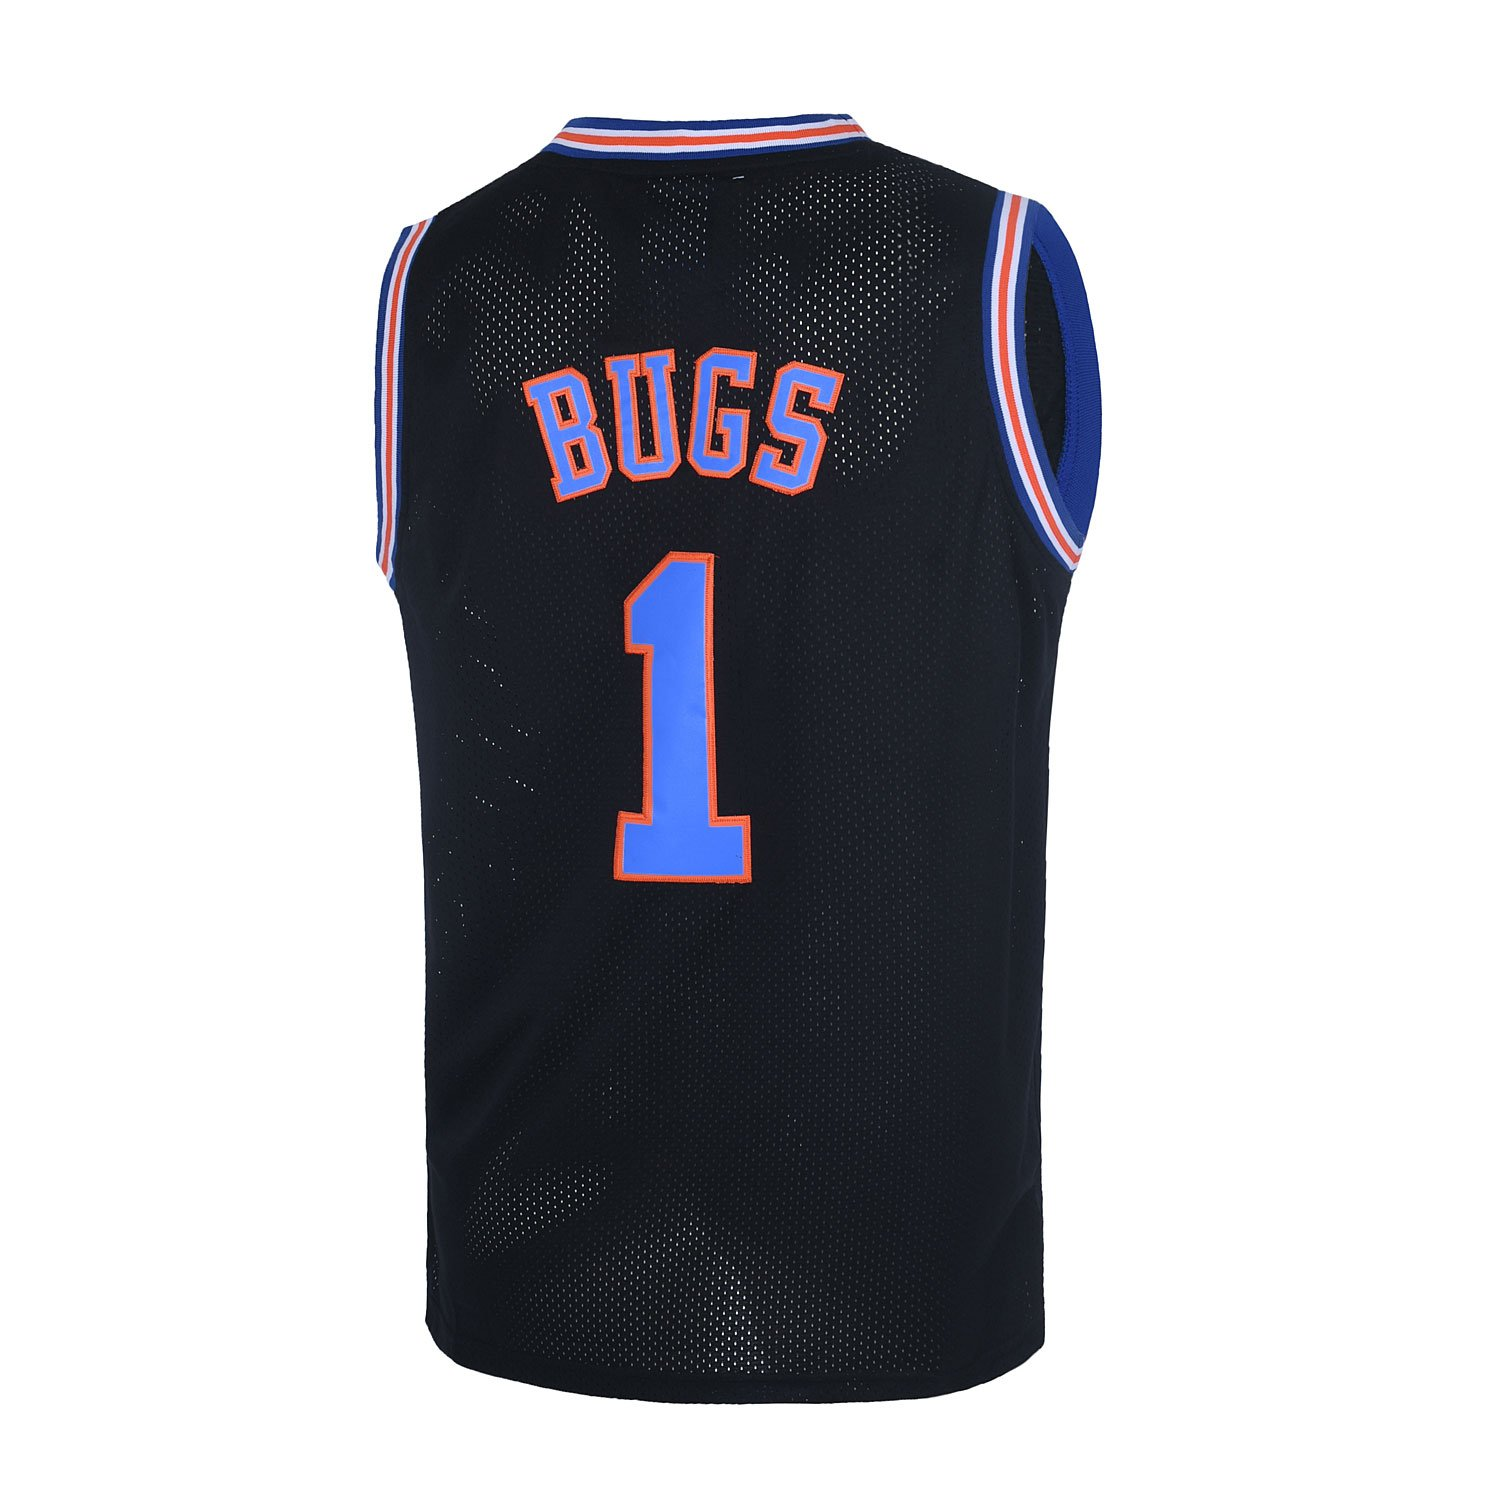 e32ce87b Youth Basketball Jersey #1 Moive Space Jam Jerseys Bugs Bunny Shirts for  Kids